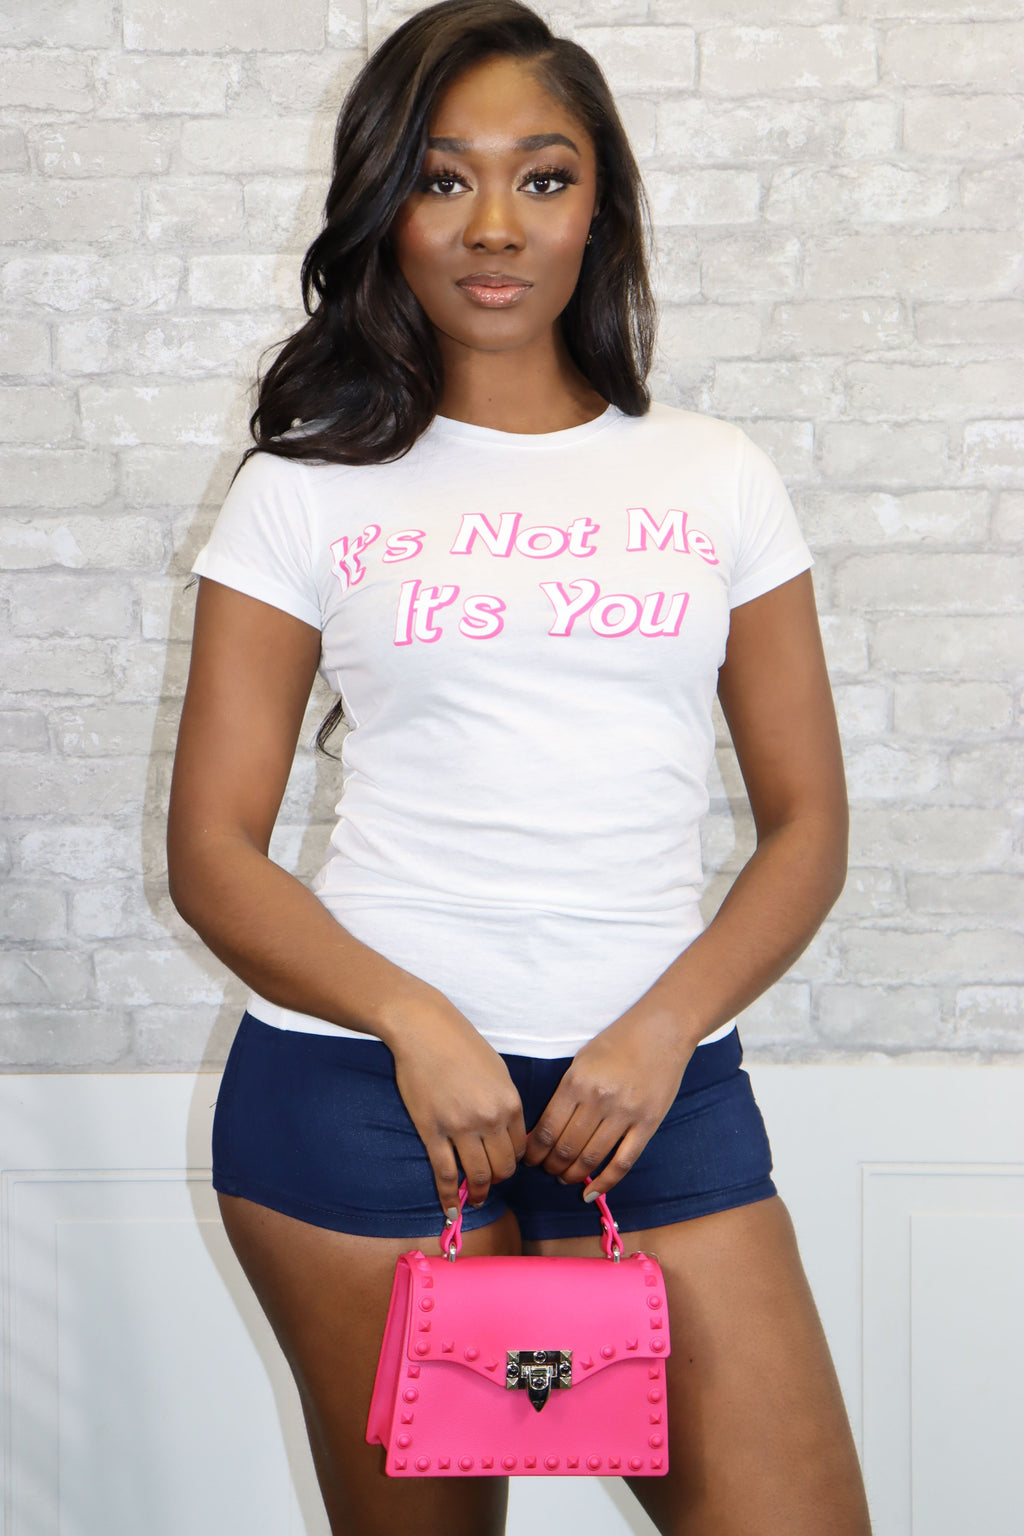 IT'S YOU GRAPHIC SHIRT - Spice Boutique